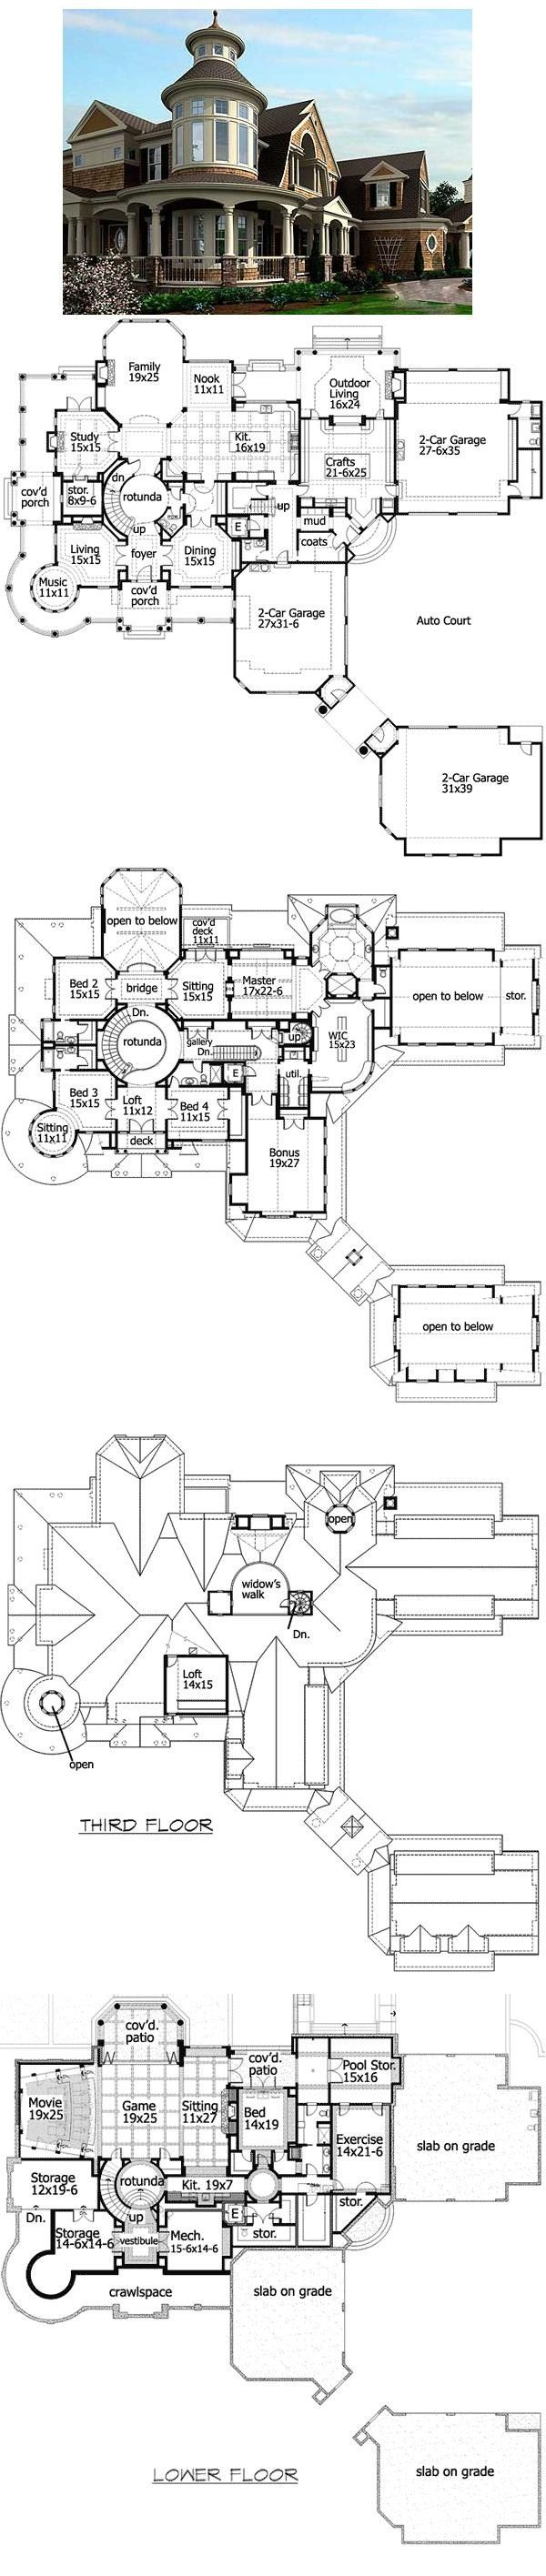 5 million dollar home plans house design plans Million dollar home plans